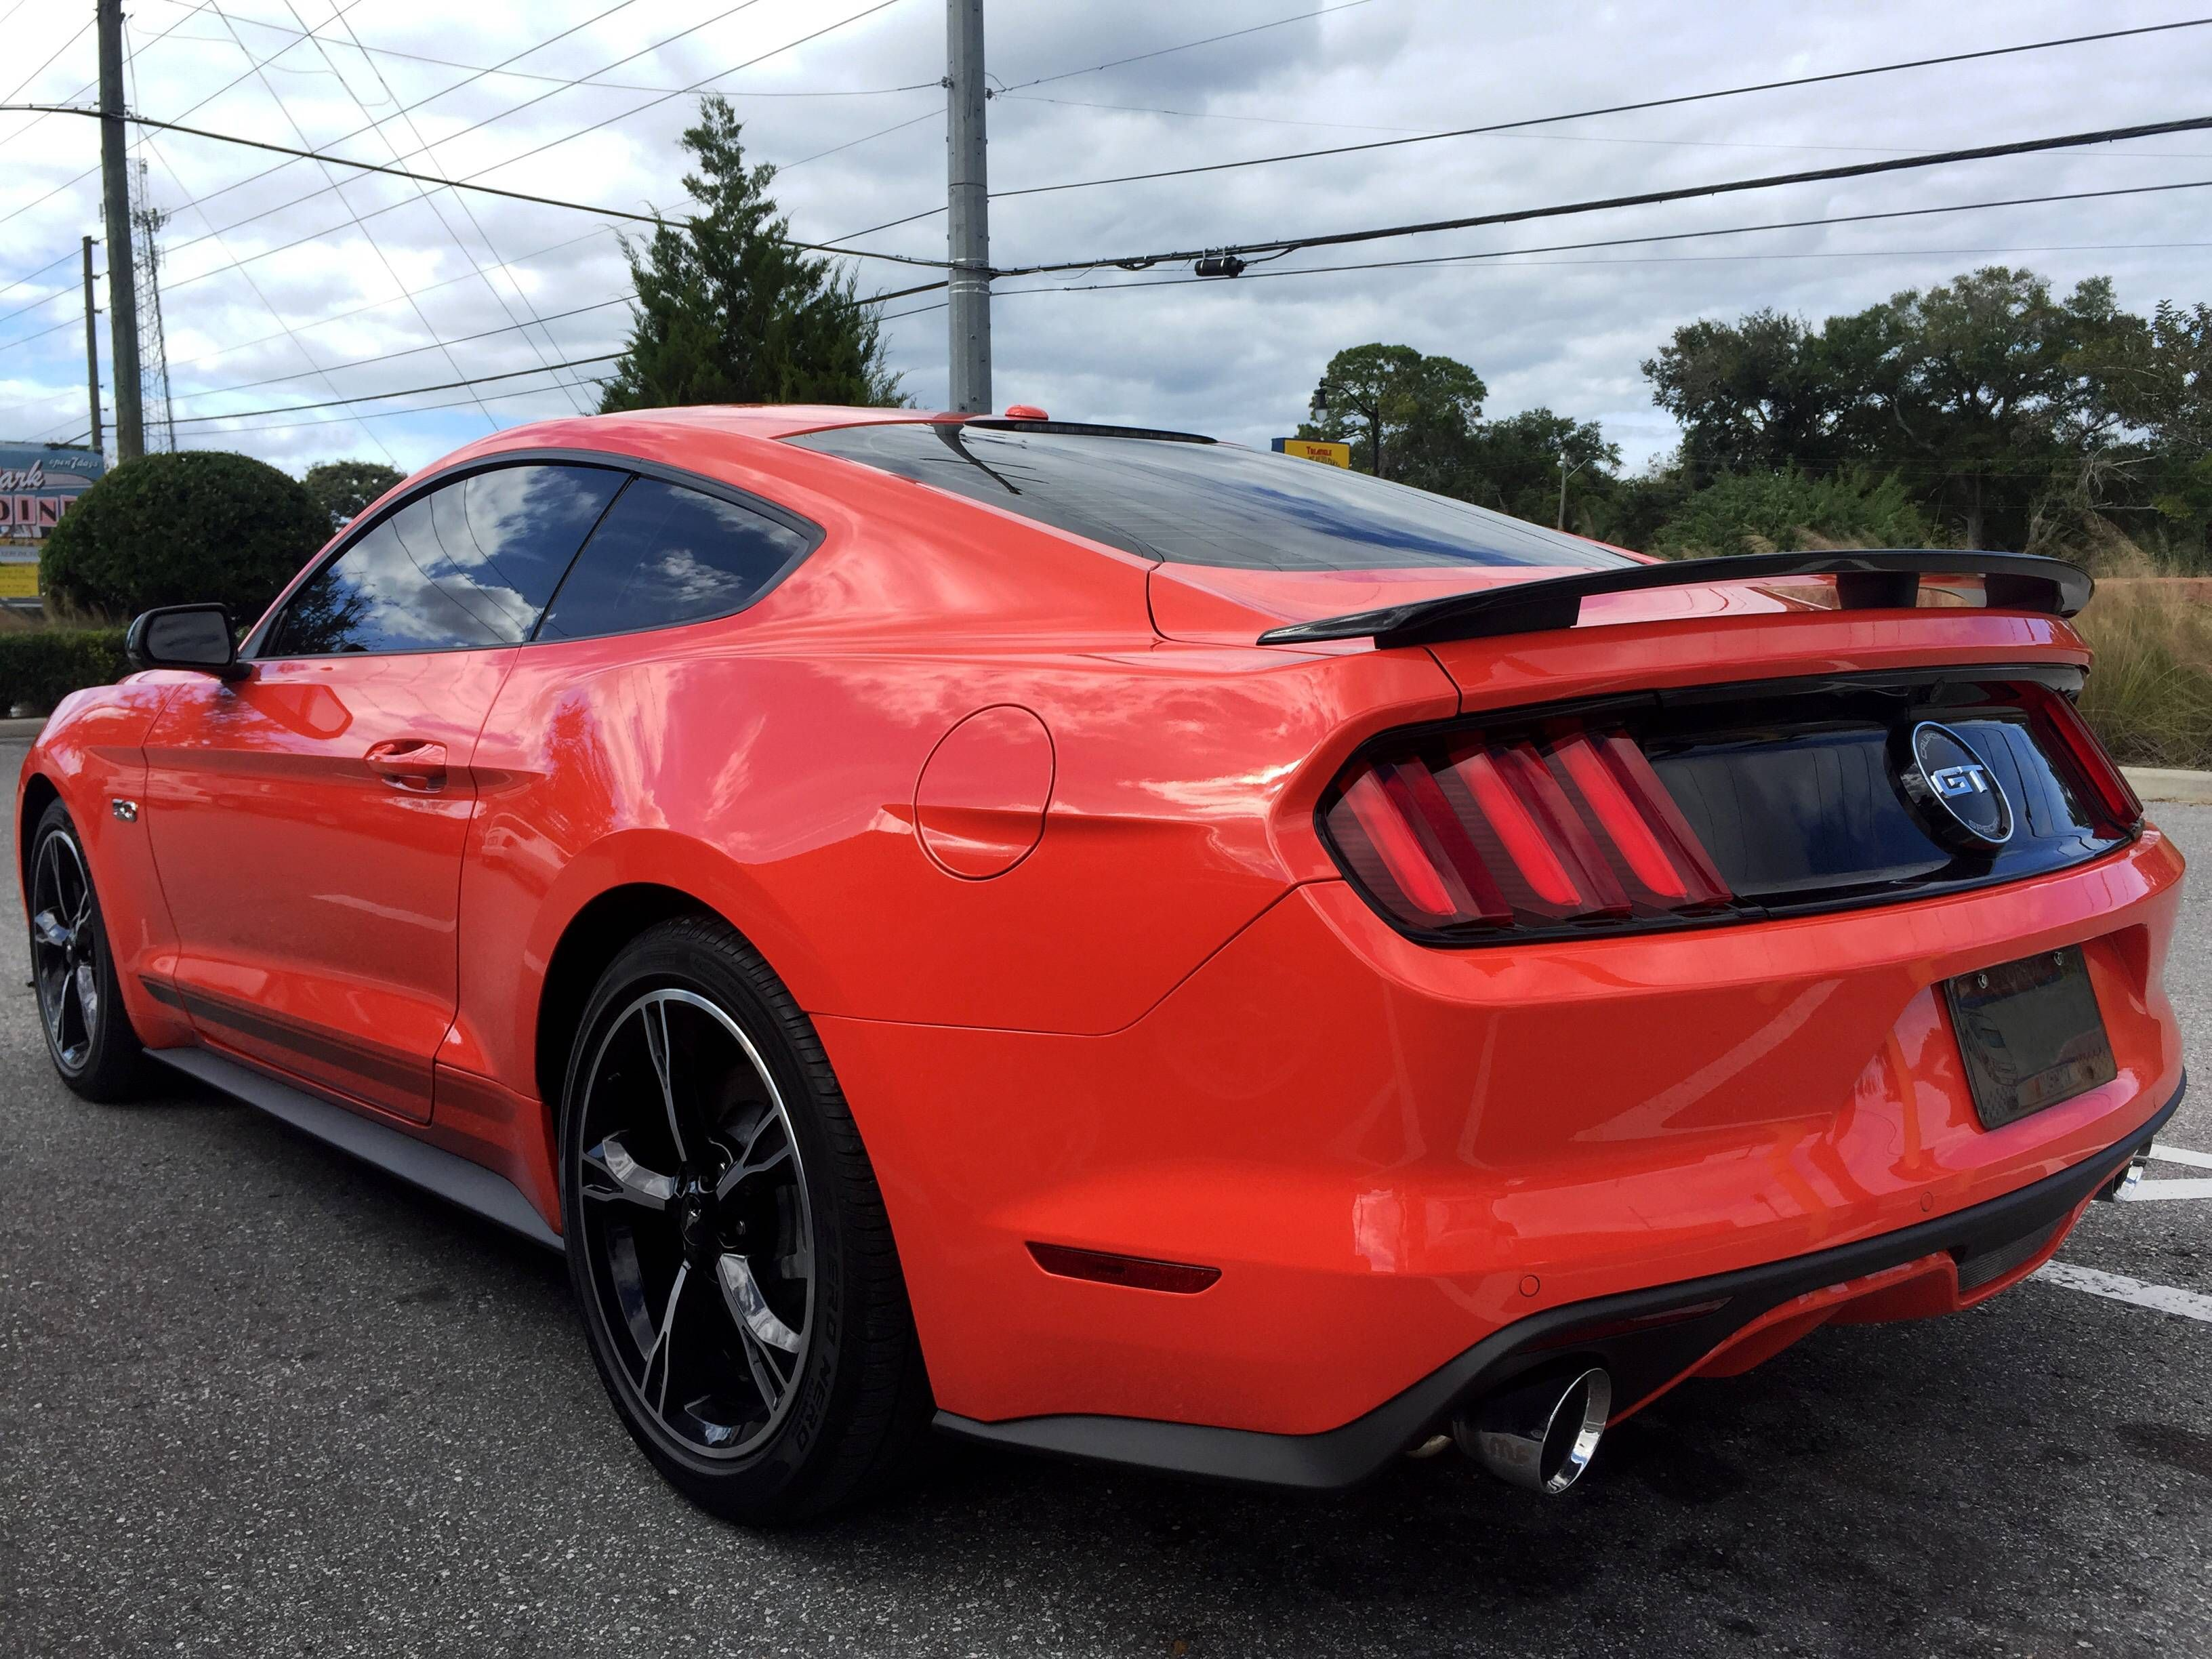 2016 mustang gt california special 3264x2448